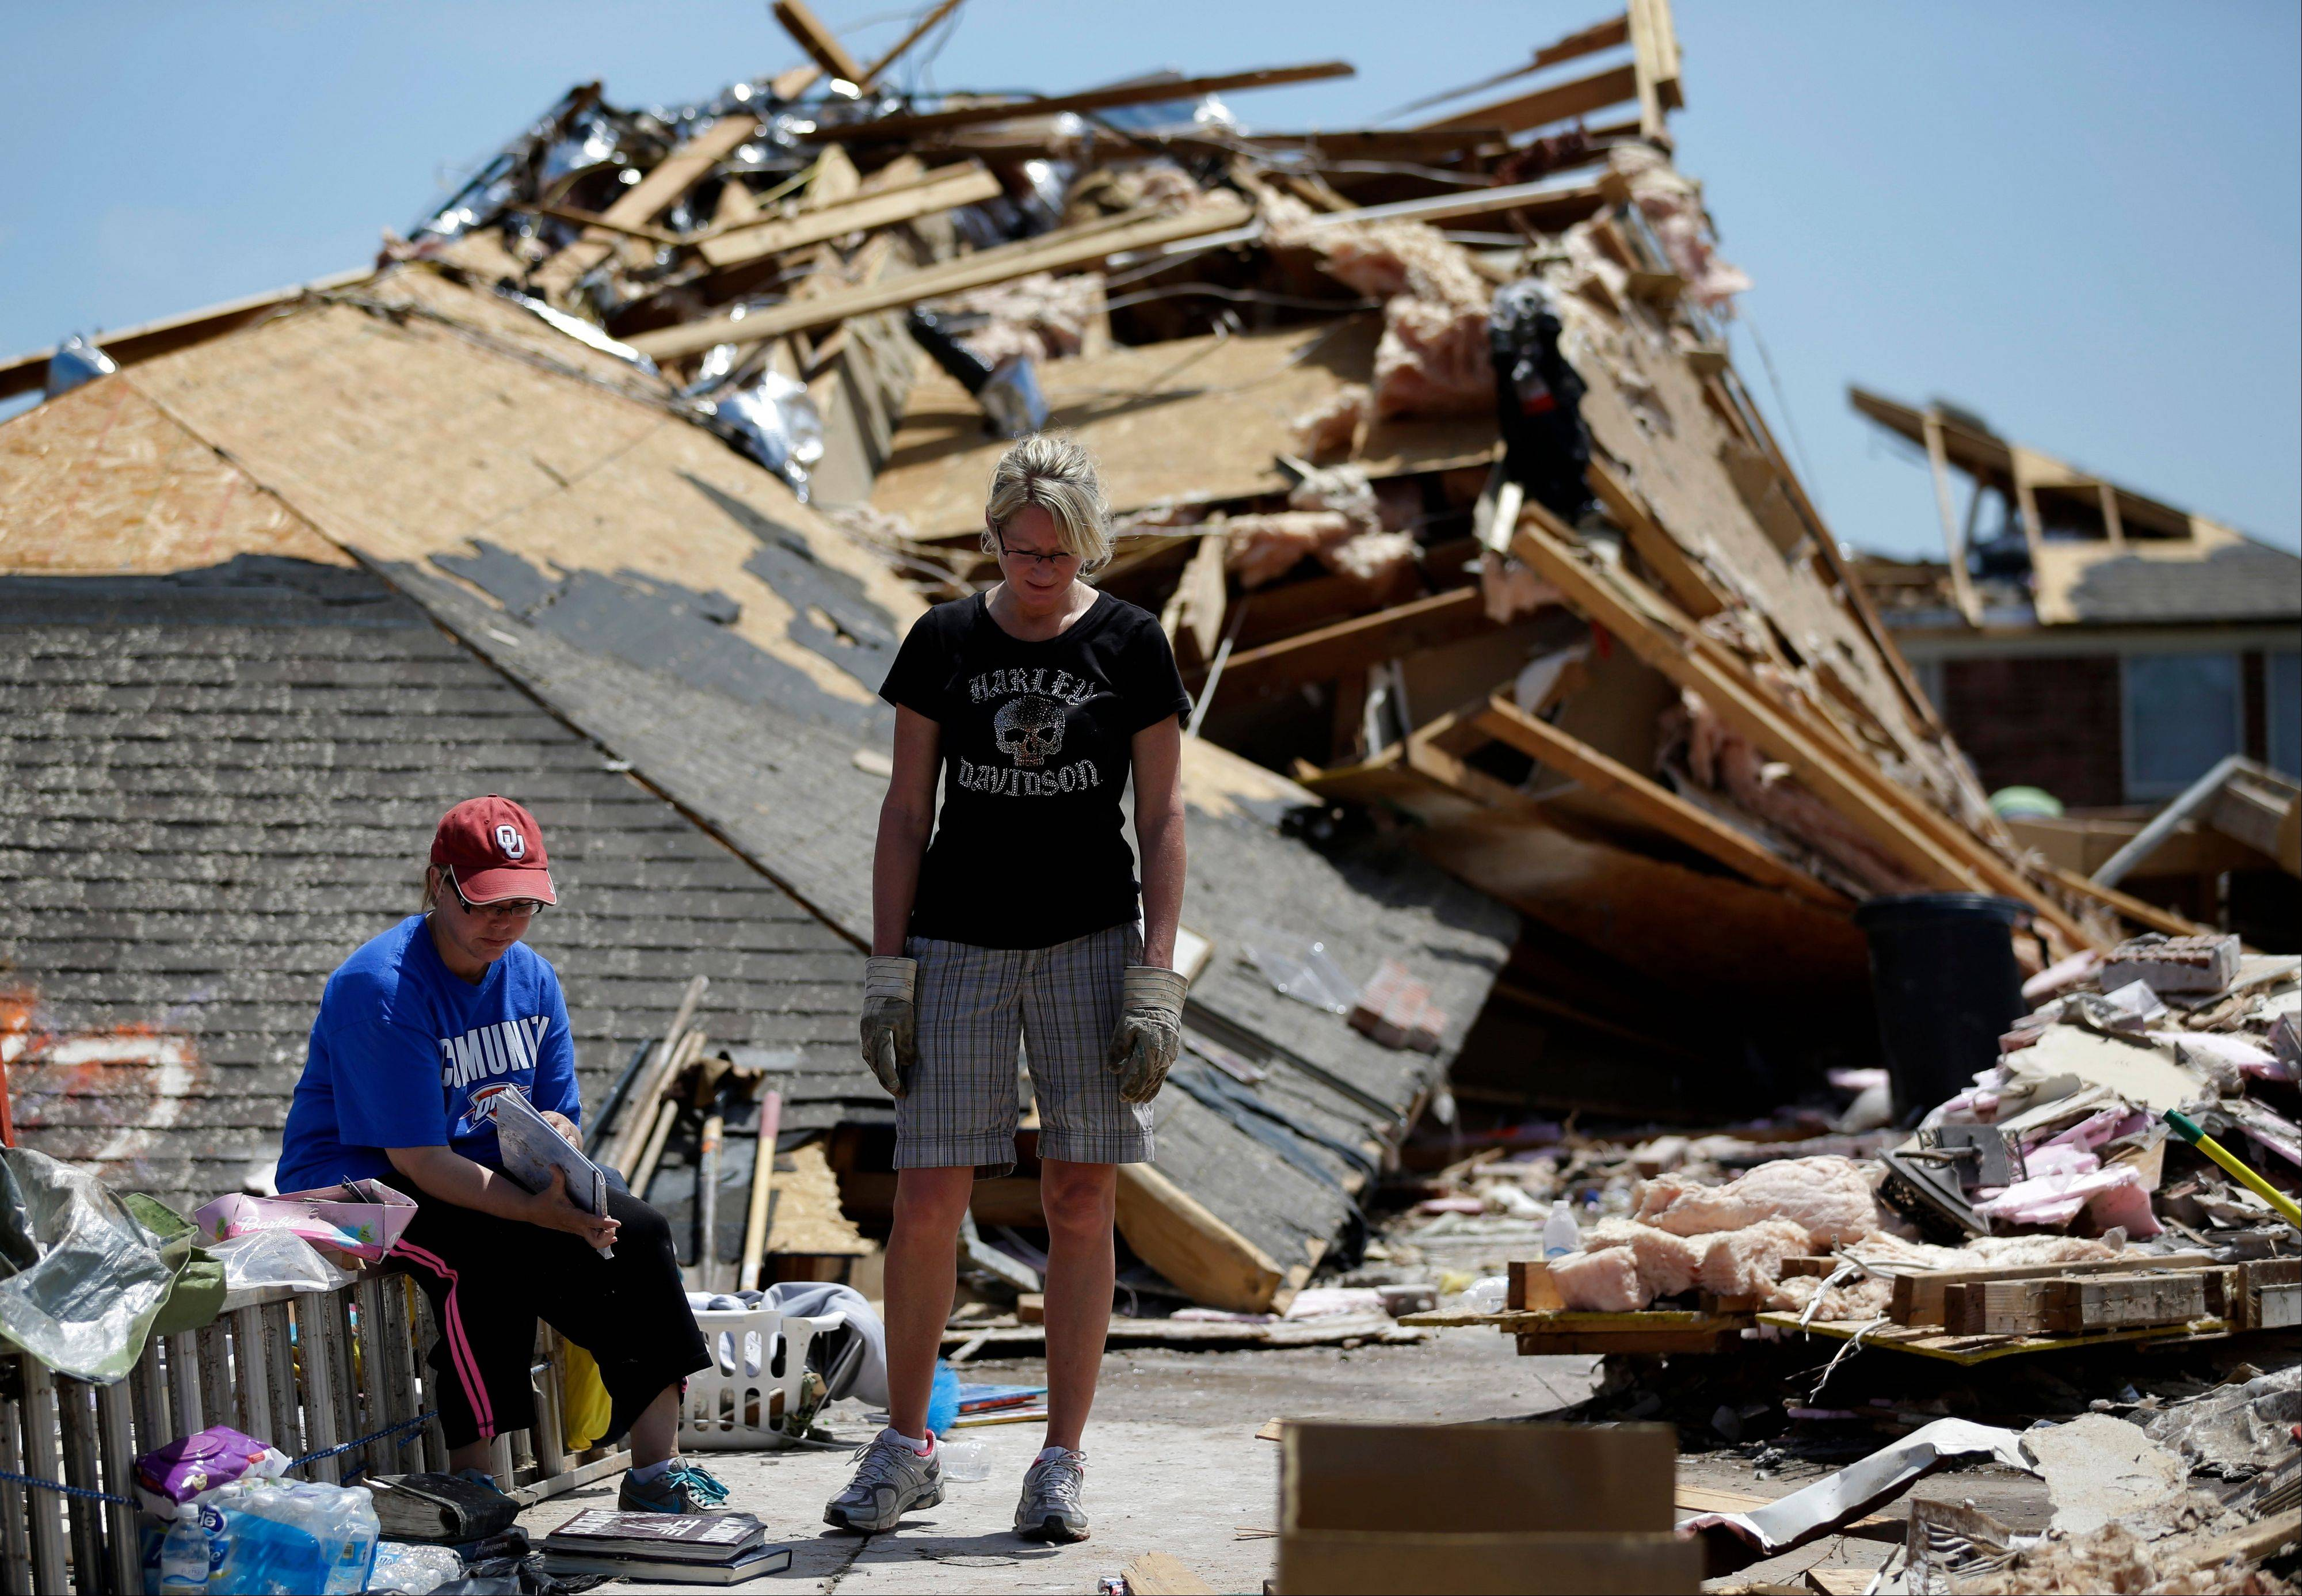 Jennifer Walker, left, sifts through a memories book Wednesday as she and her friend Kate Burger, center, stand in front of what remains of Walker's home. When she moved into her single-story brick house in Moore eight years ago, she considered installing a safe room or bunker to shield her family. She decided against it.